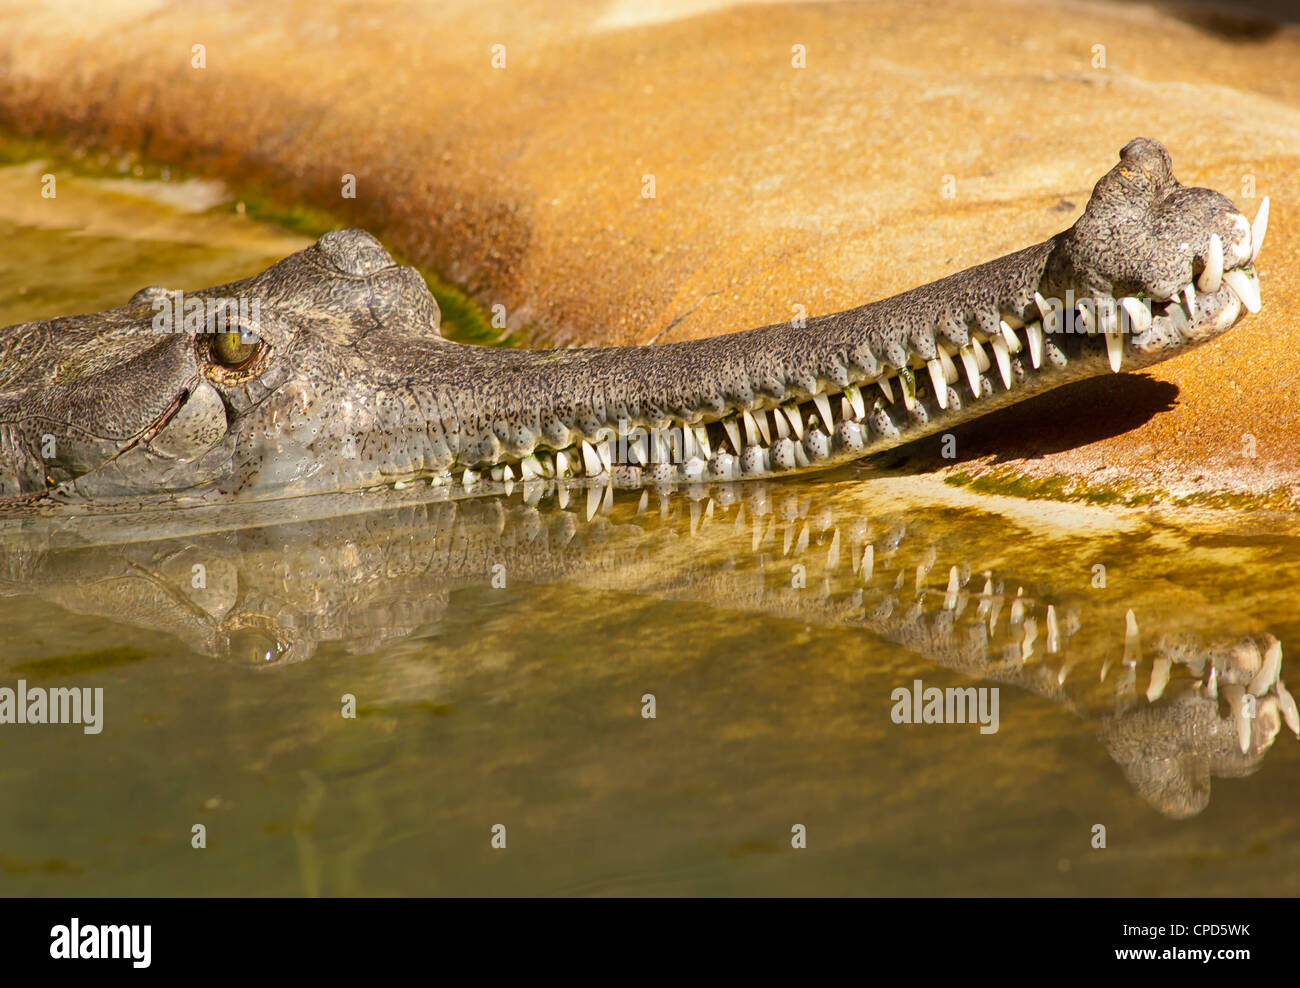 The gharial (Gavialis gangeticus) is a crocodilian of the family Gavialidae that is native to the Indian subcontinent. - Stock Image